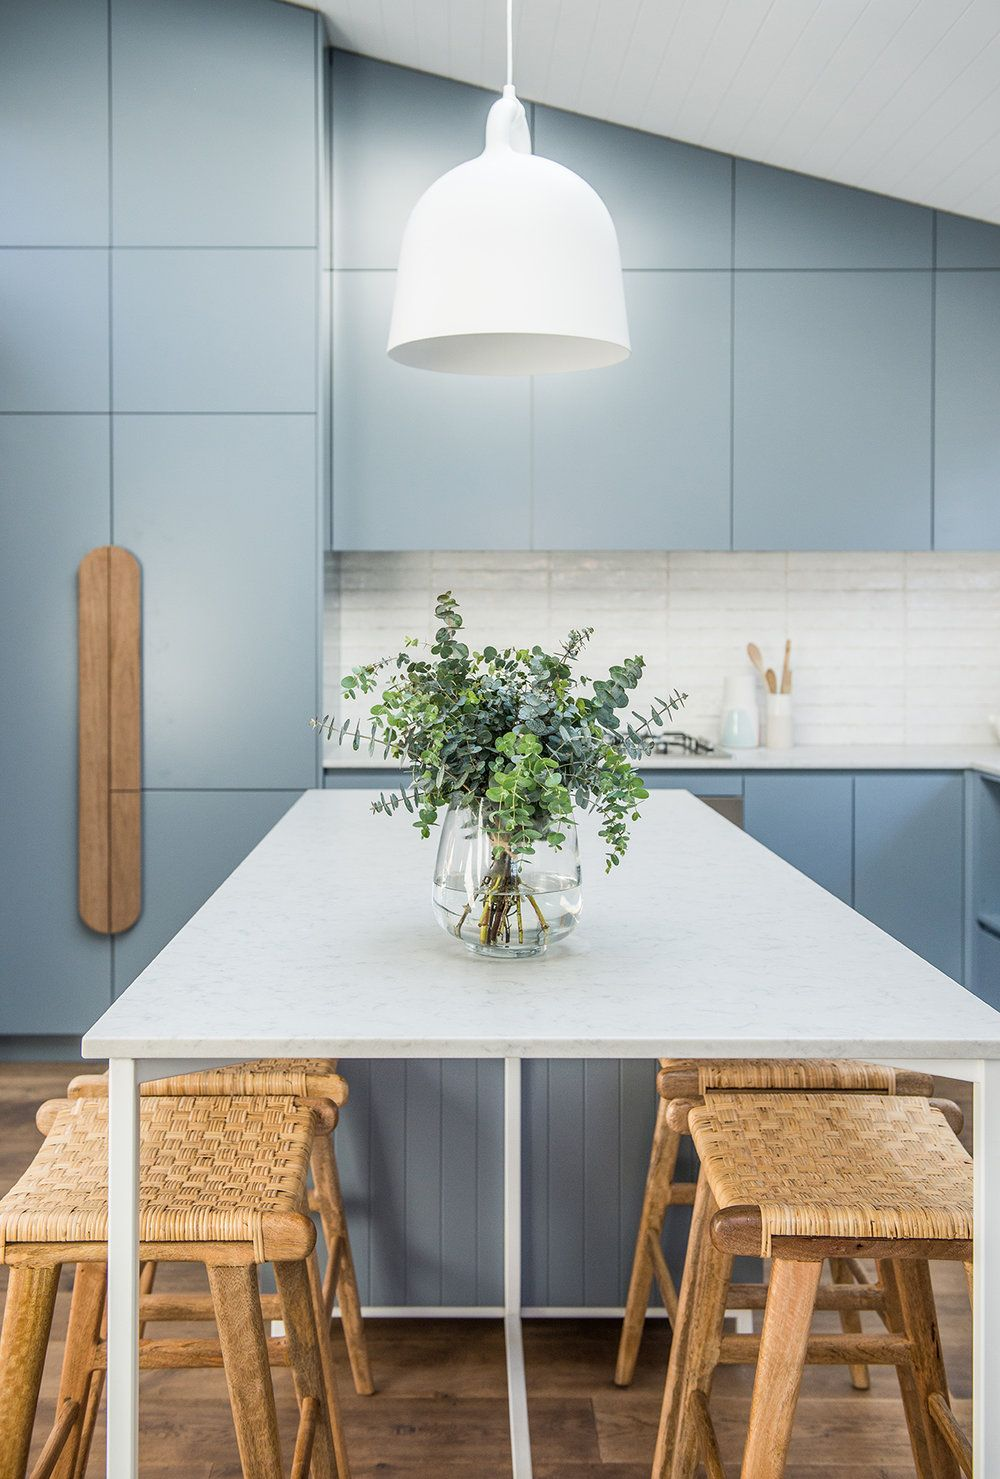 top 5 kitchen trends for 2017 — adore home magazine